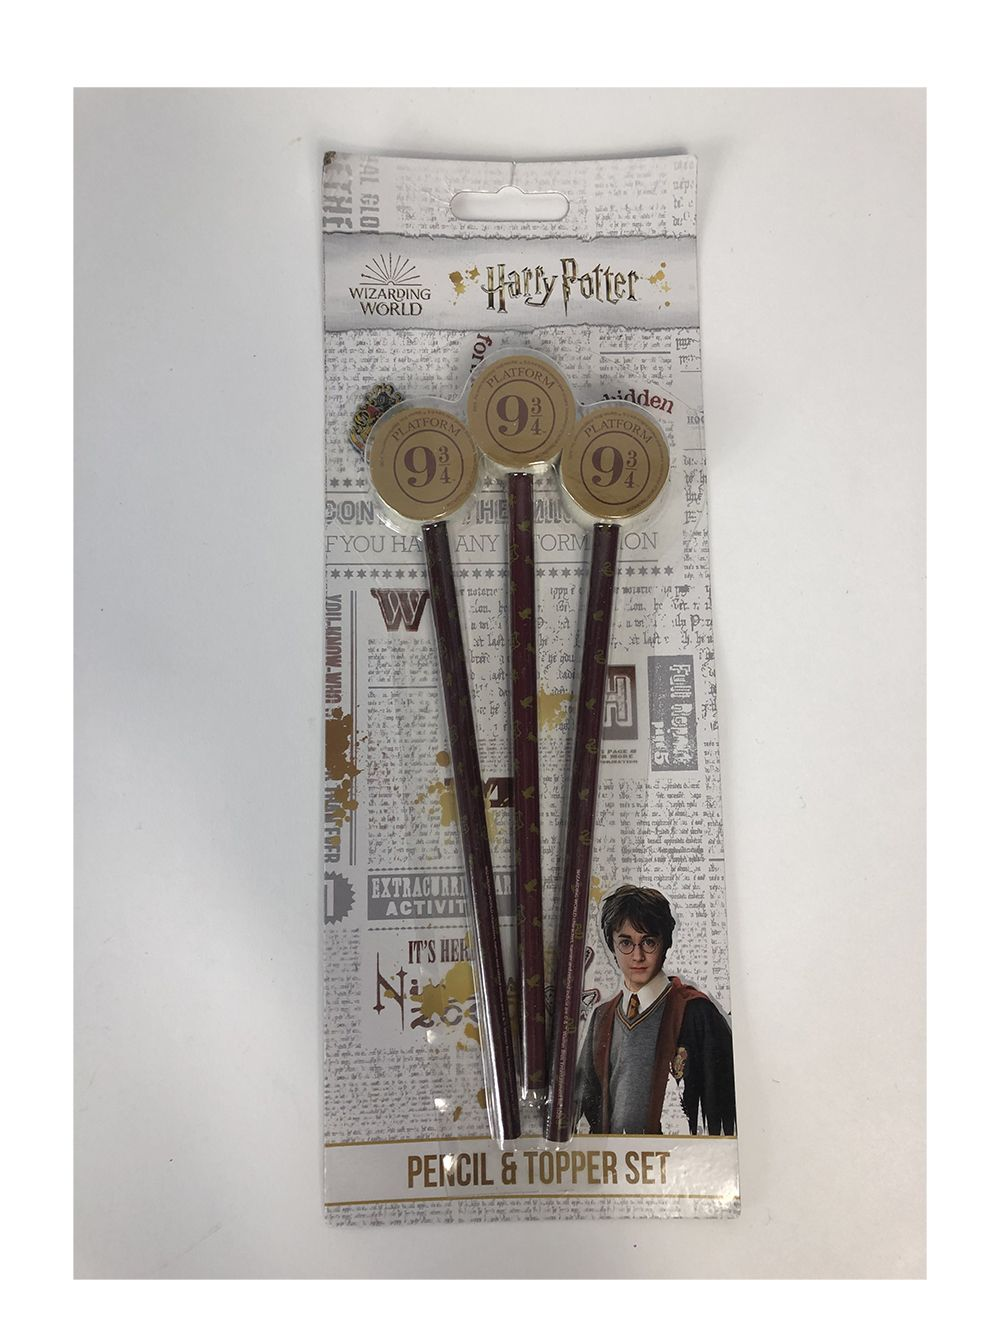 Harry Potter Stationery pencil and topper set